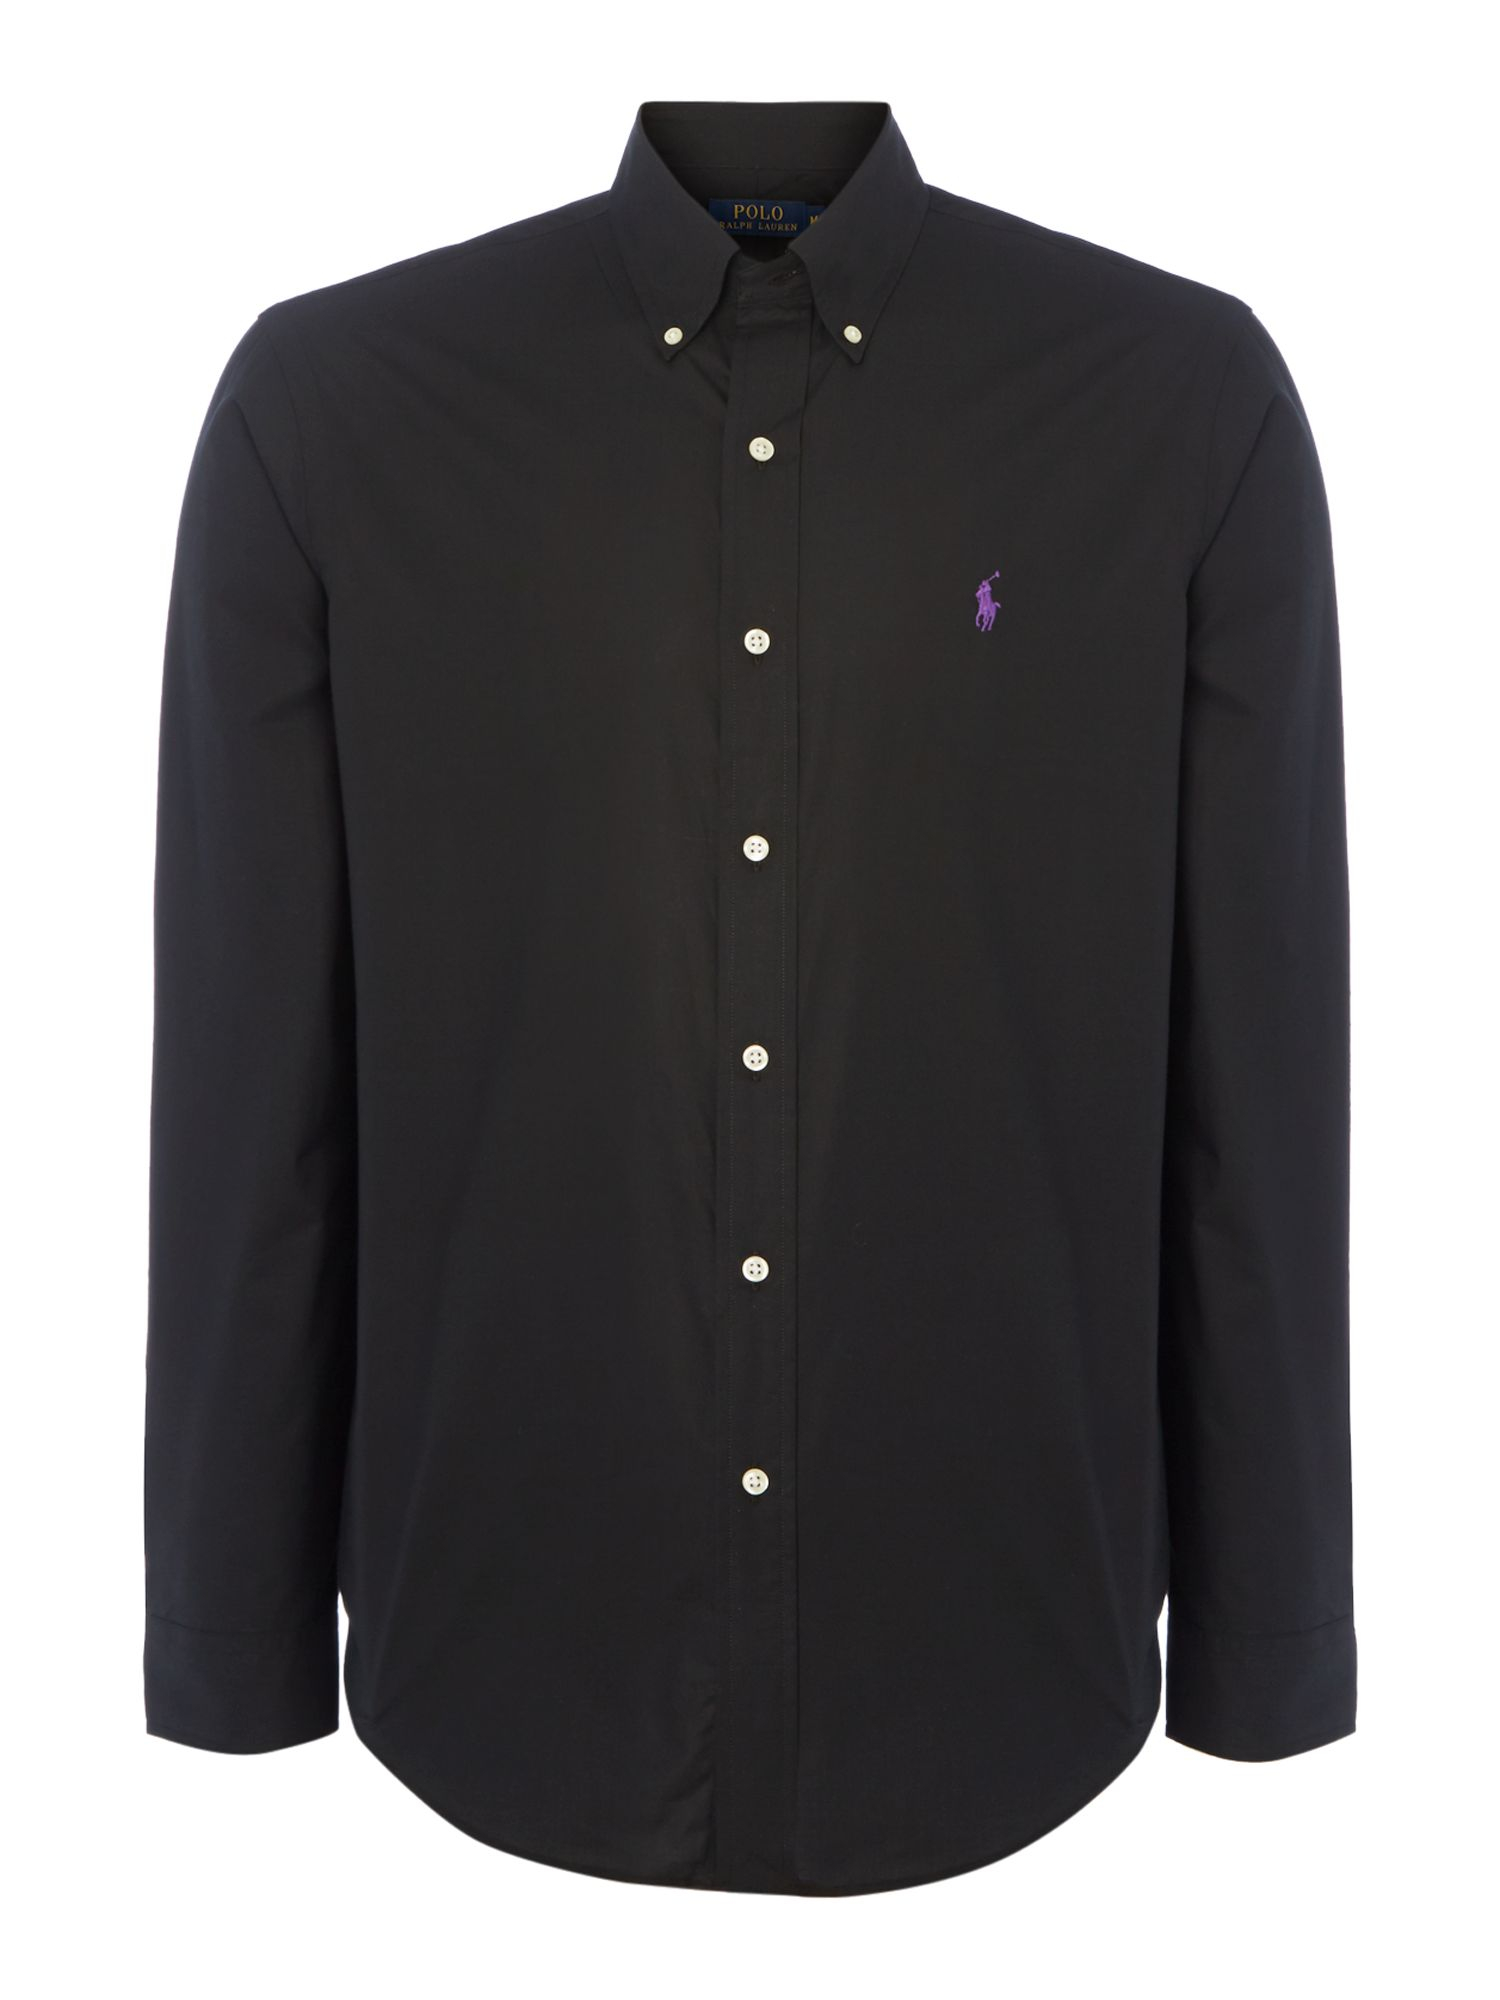 Polo ralph lauren Plain Long Sleeve Button Down Shirt in Black for ...